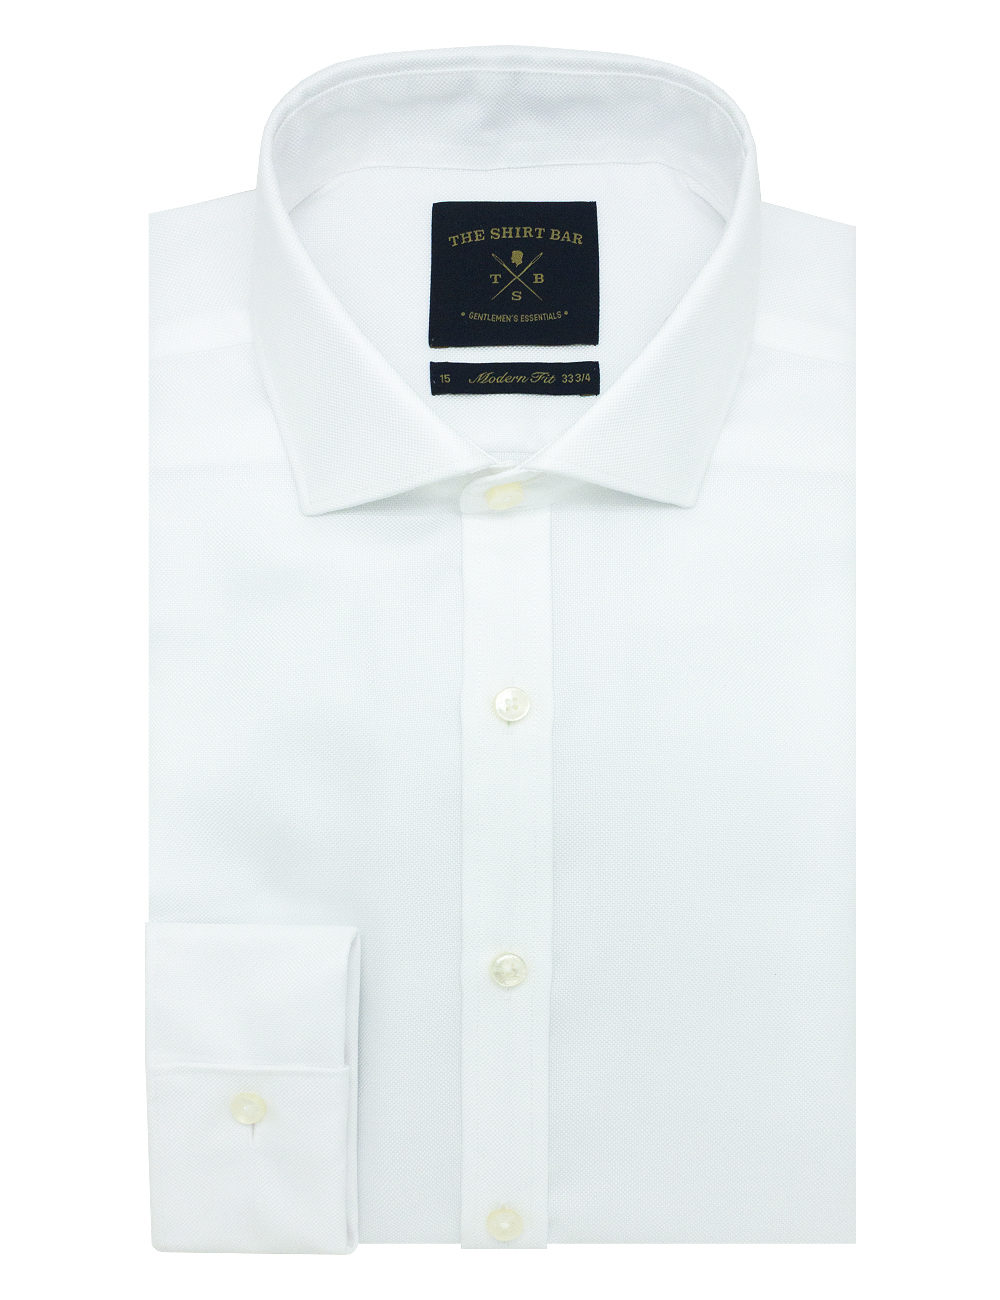 Modern Fit Double Ply Non-iron 100% Premium Cotton Solid White Long Sleeve Double Cuff Shirt with Long Lasting White Finishing MF1D2.NOS